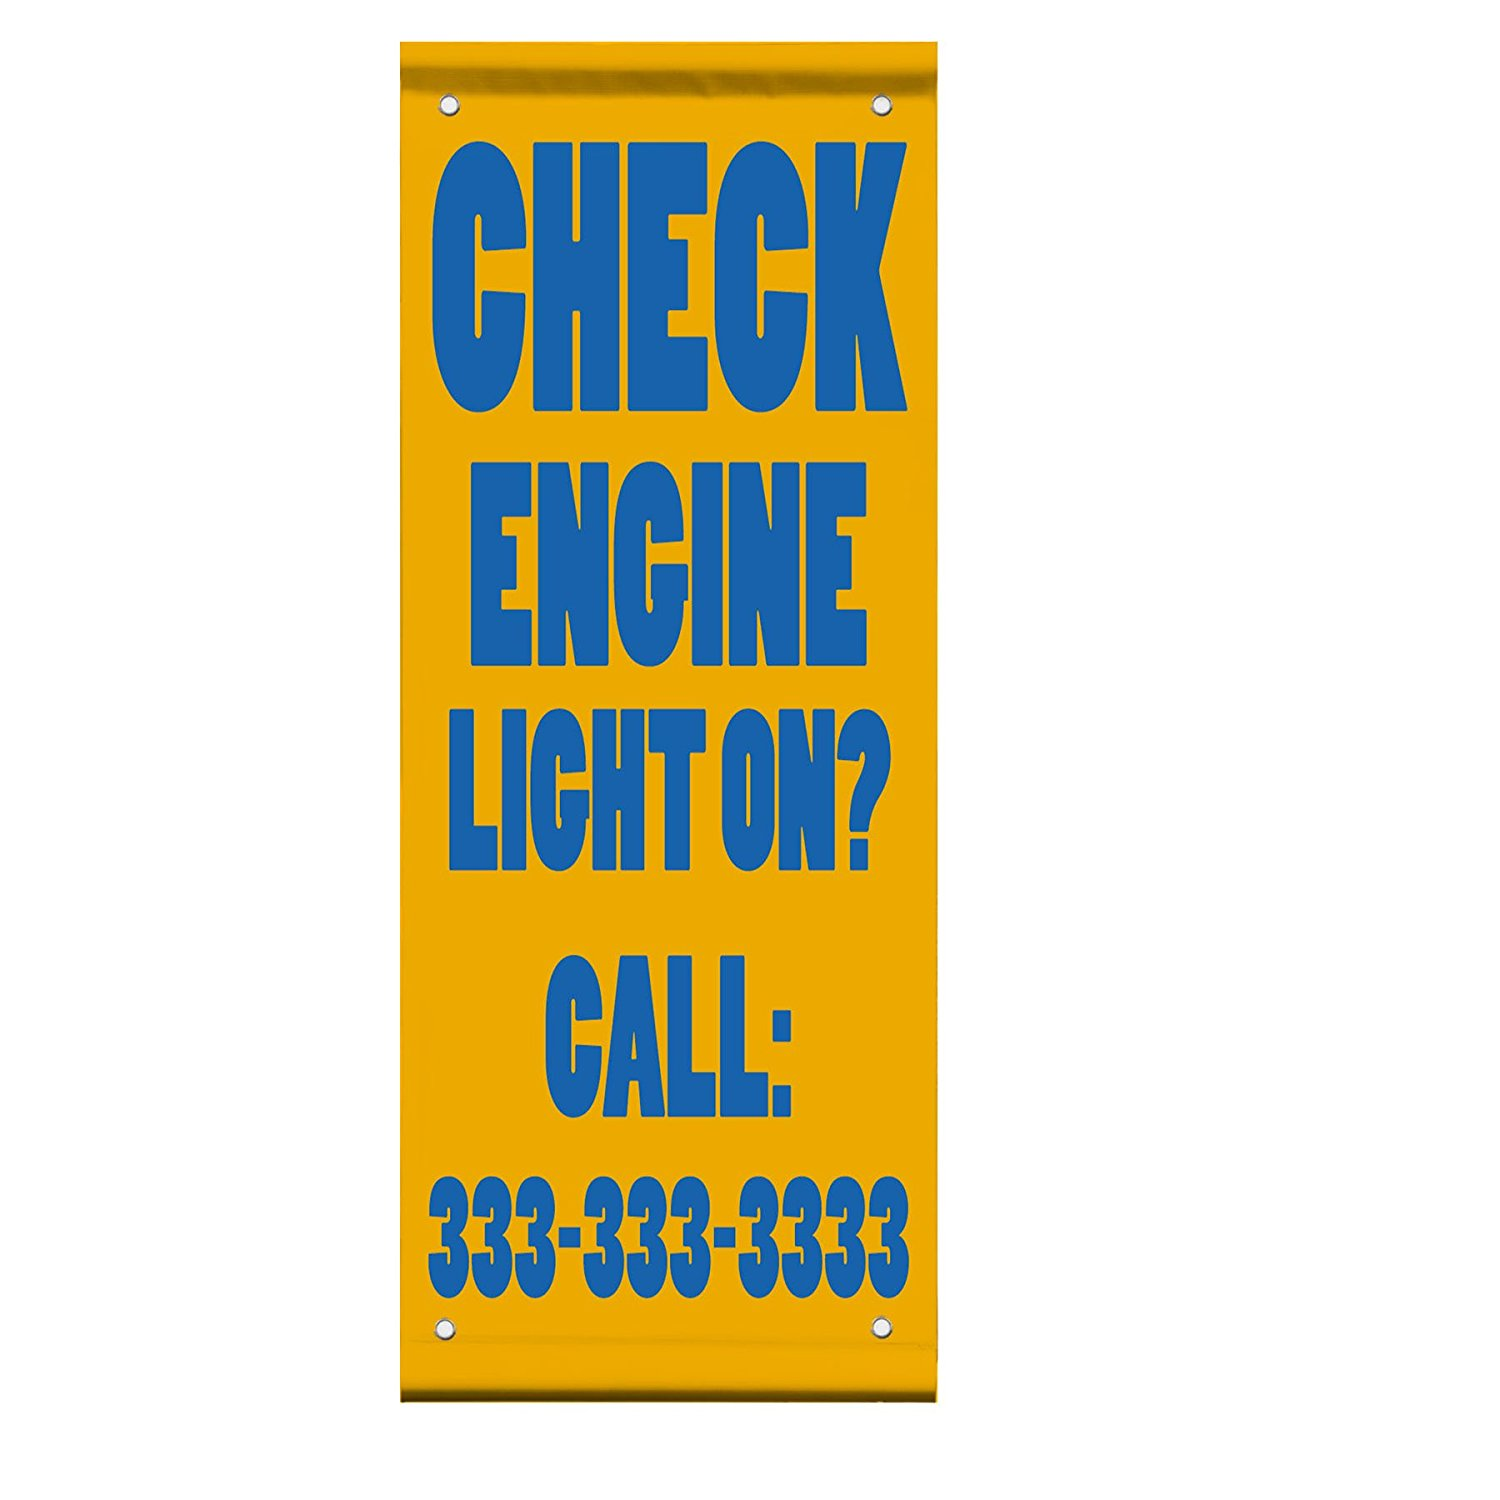 Check Engine Light On? Custom Number Style 2 Double Sided Pole Banner Sign 24 in x 36 in w/ Wall Bracket